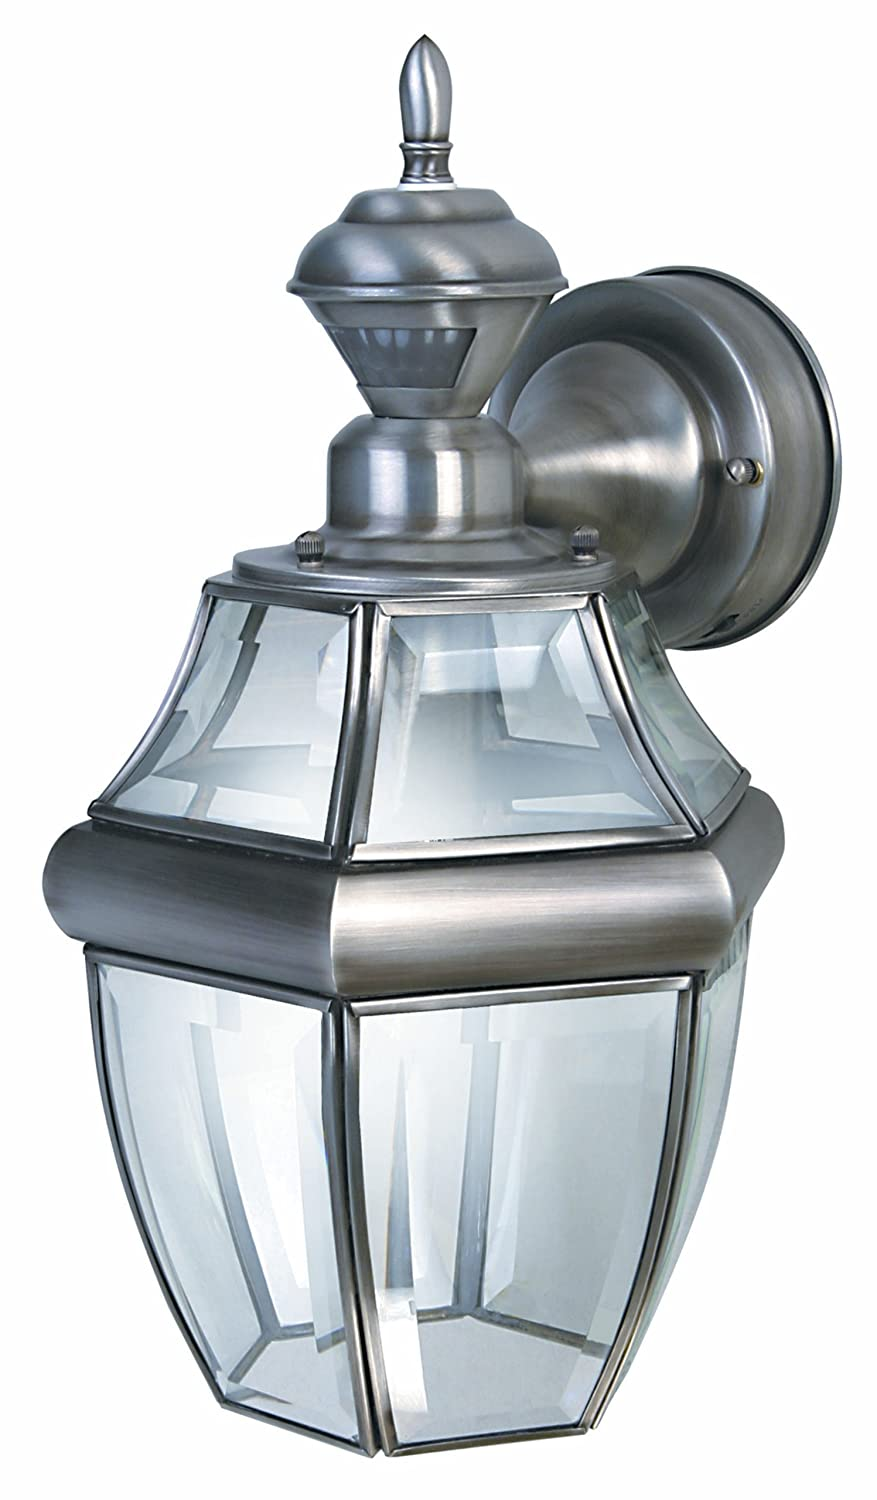 Heath zenith sl 4166 sa motion activated six sided carriage light heath zenith sl 4166 sa motion activated six sided carriage light silver with beveled glass wall porch lights amazon workwithnaturefo